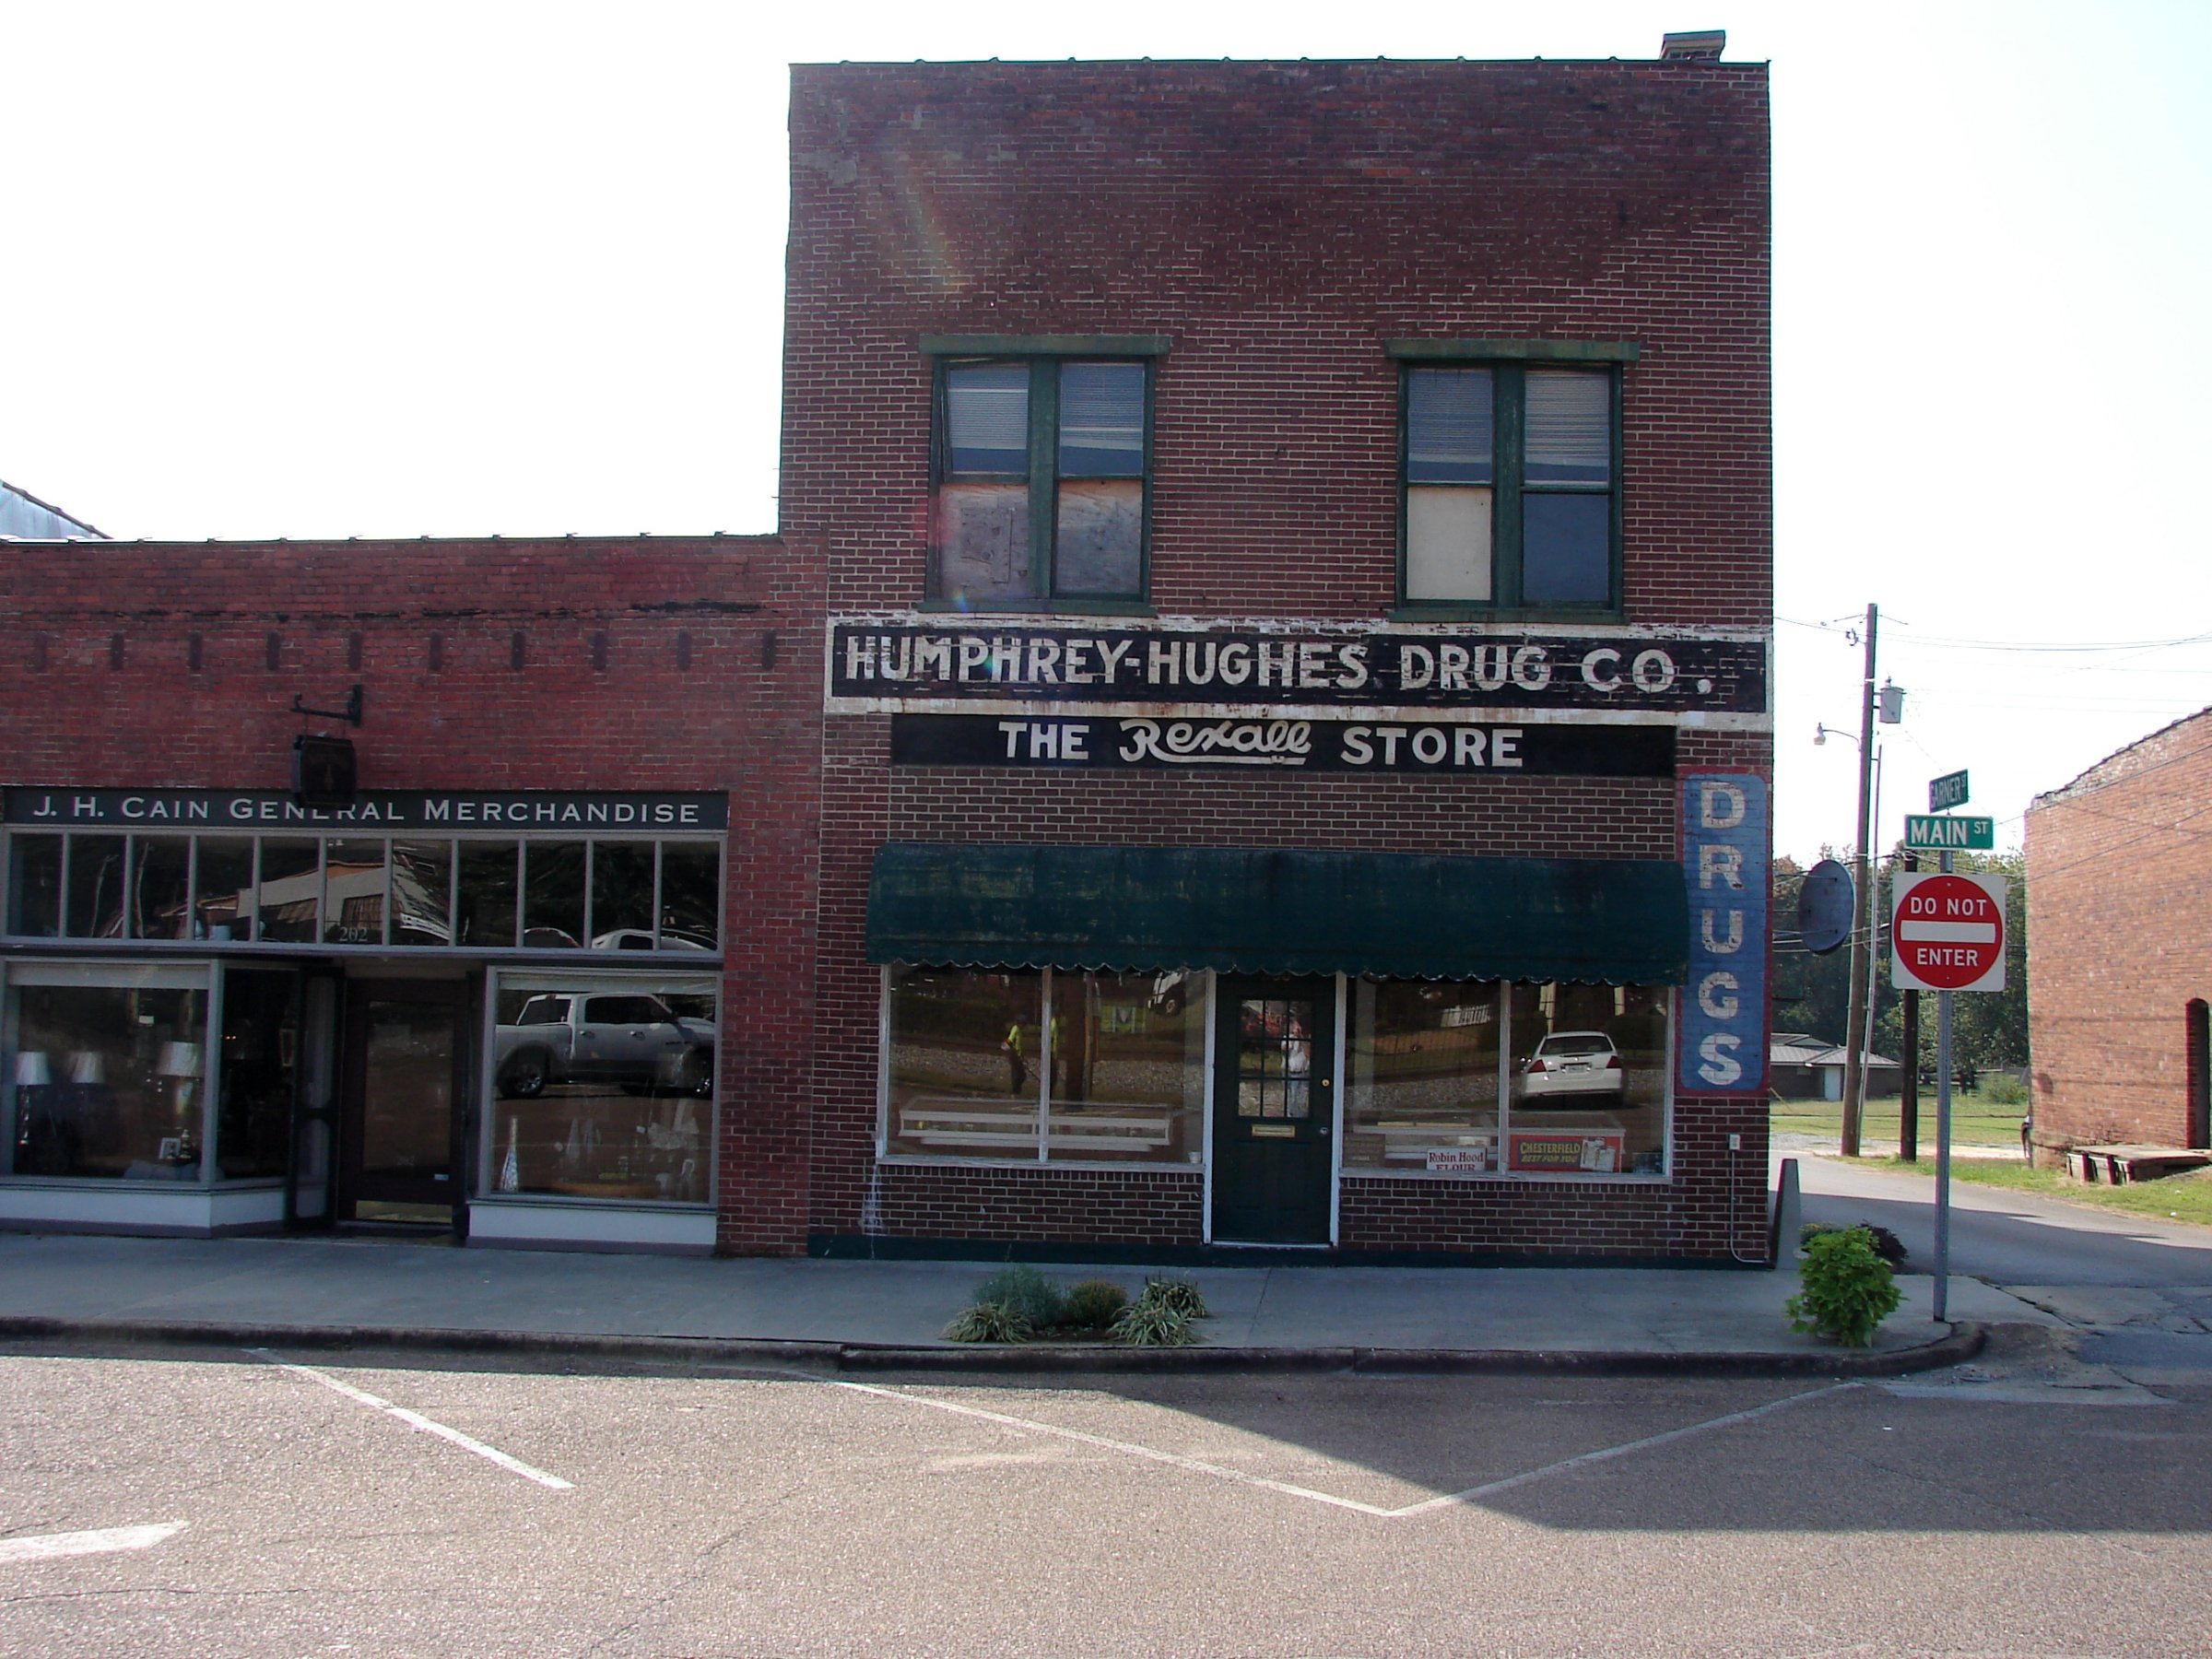 200 Main Street - Humprey Hughes Drug Co